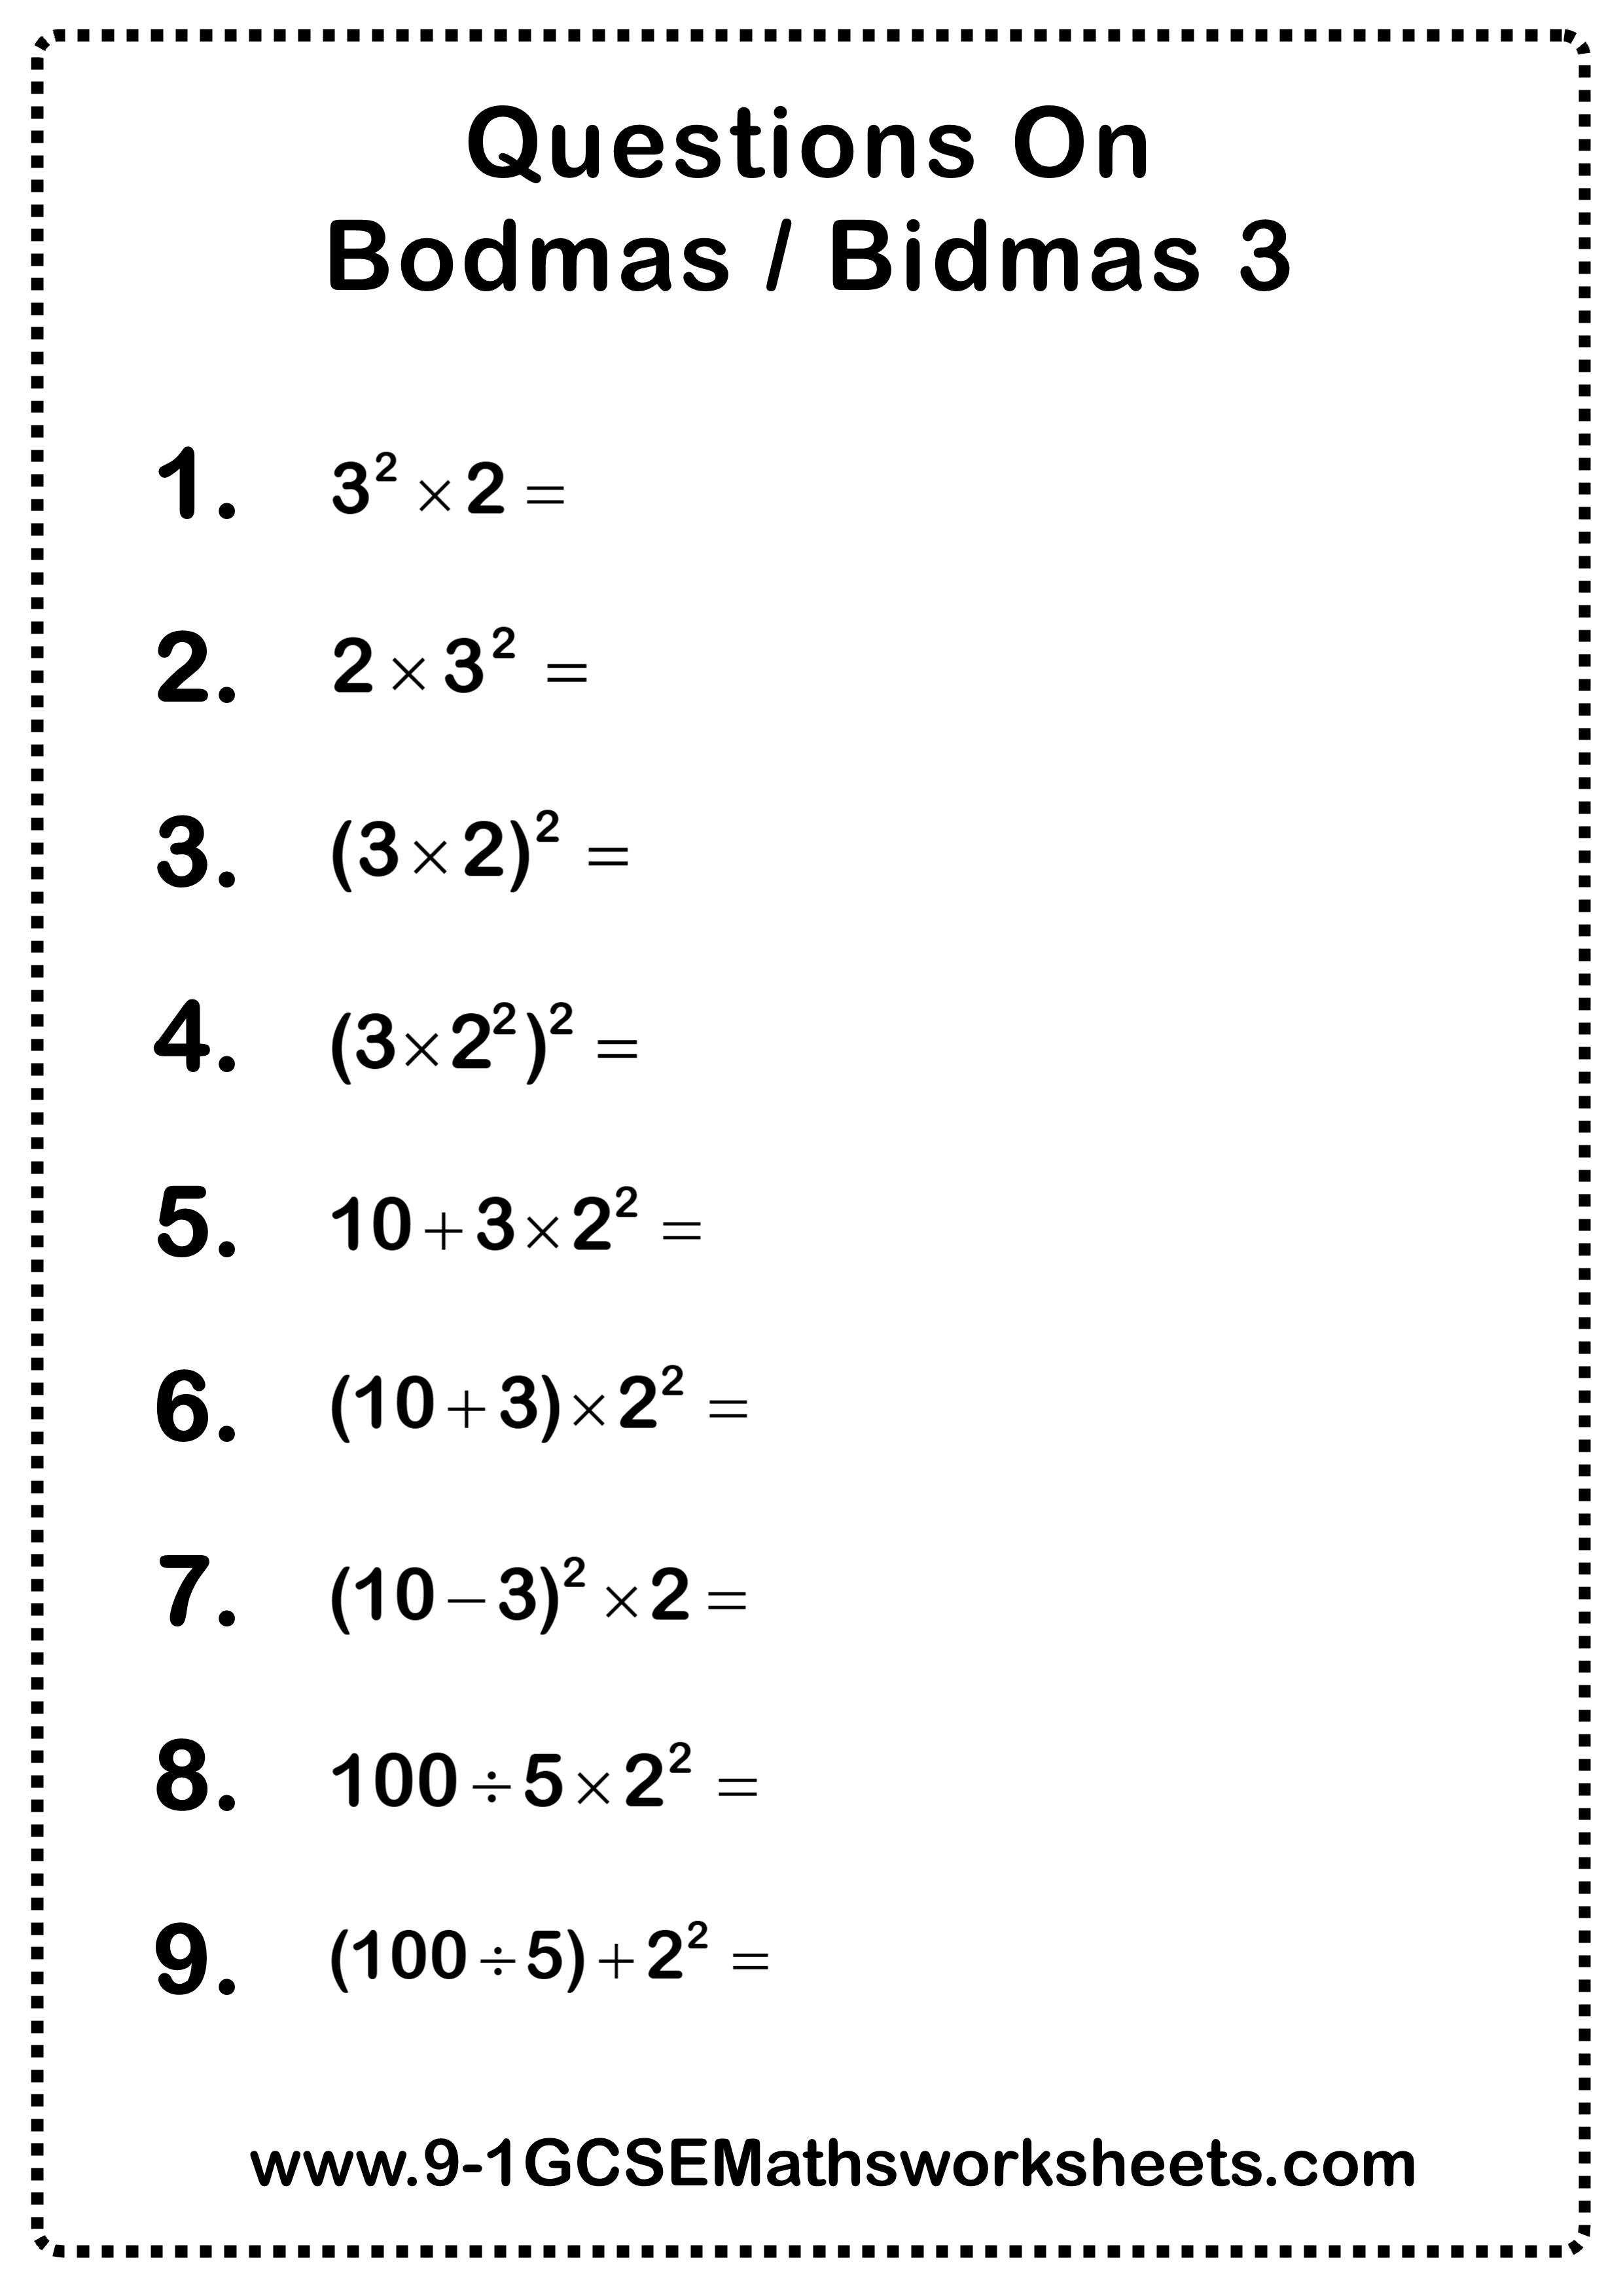 Bodmas Questions 3 Bodmas Grade 6 Math Worksheets Math Worksheet